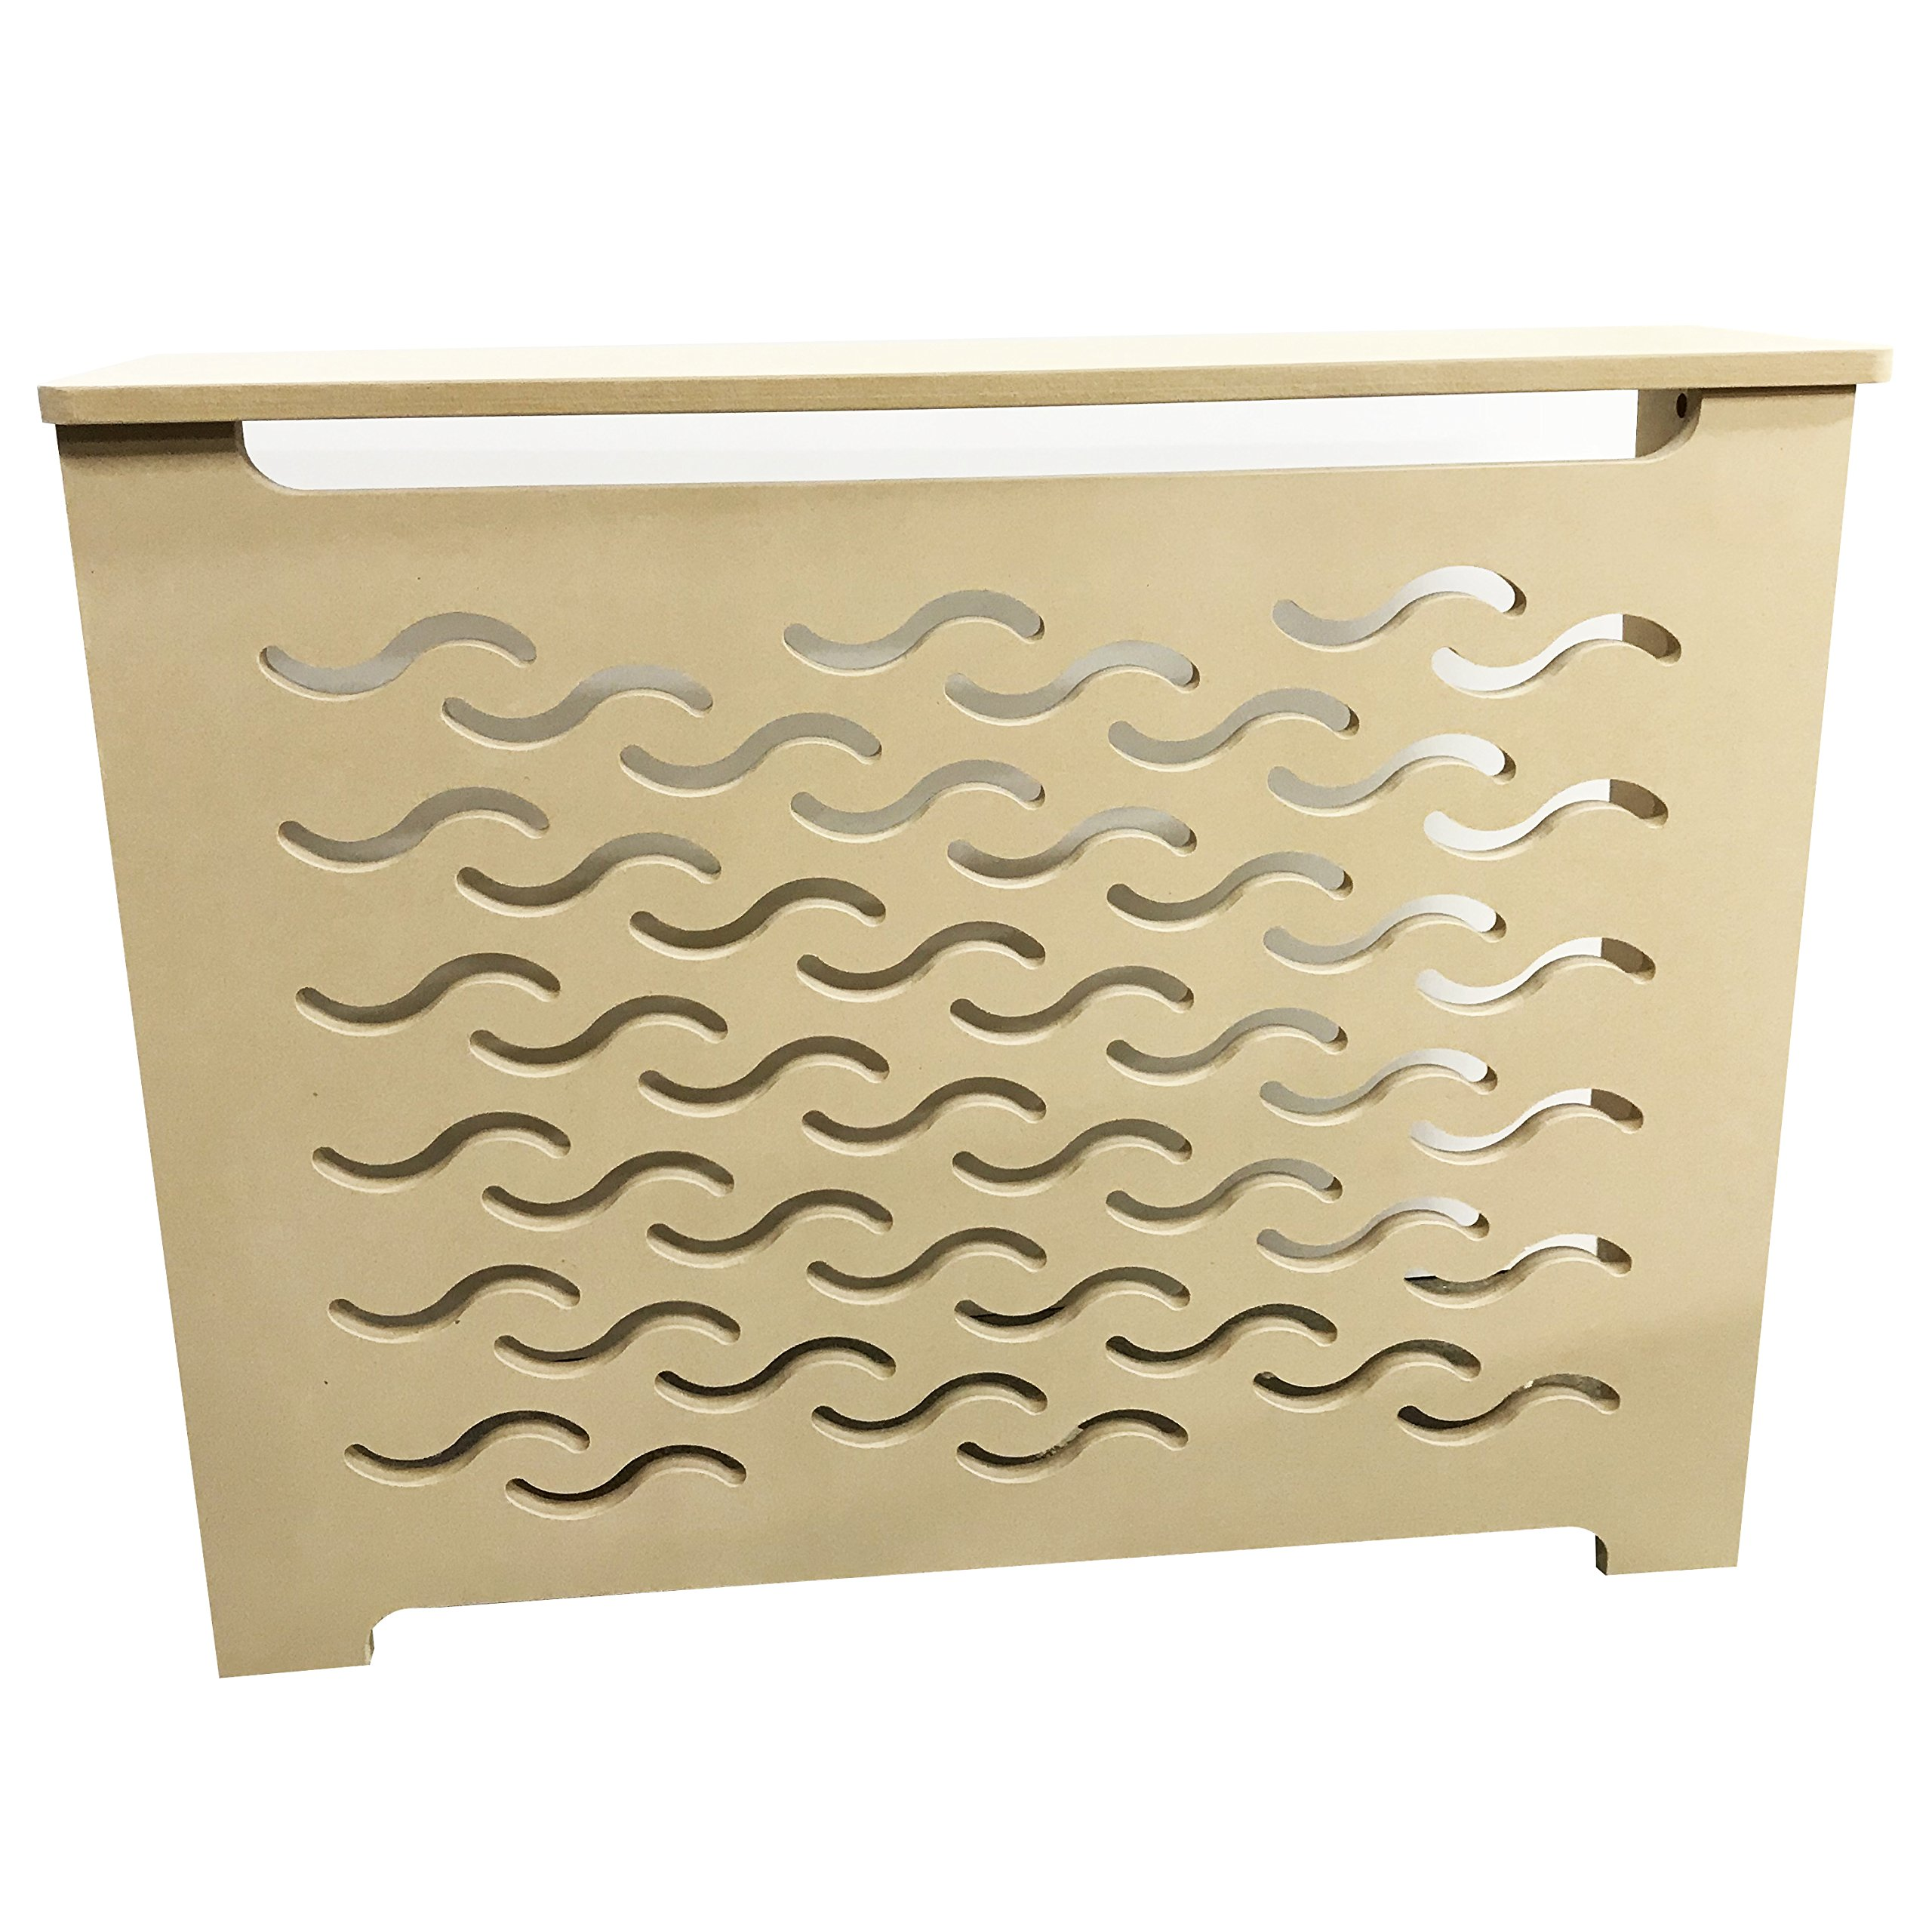 Unfinished MDF Radiator Heater Cover, 32''Tall x 32''Wide x 9'' Deep - CHOOSE YOUR SIZE - Model MD3